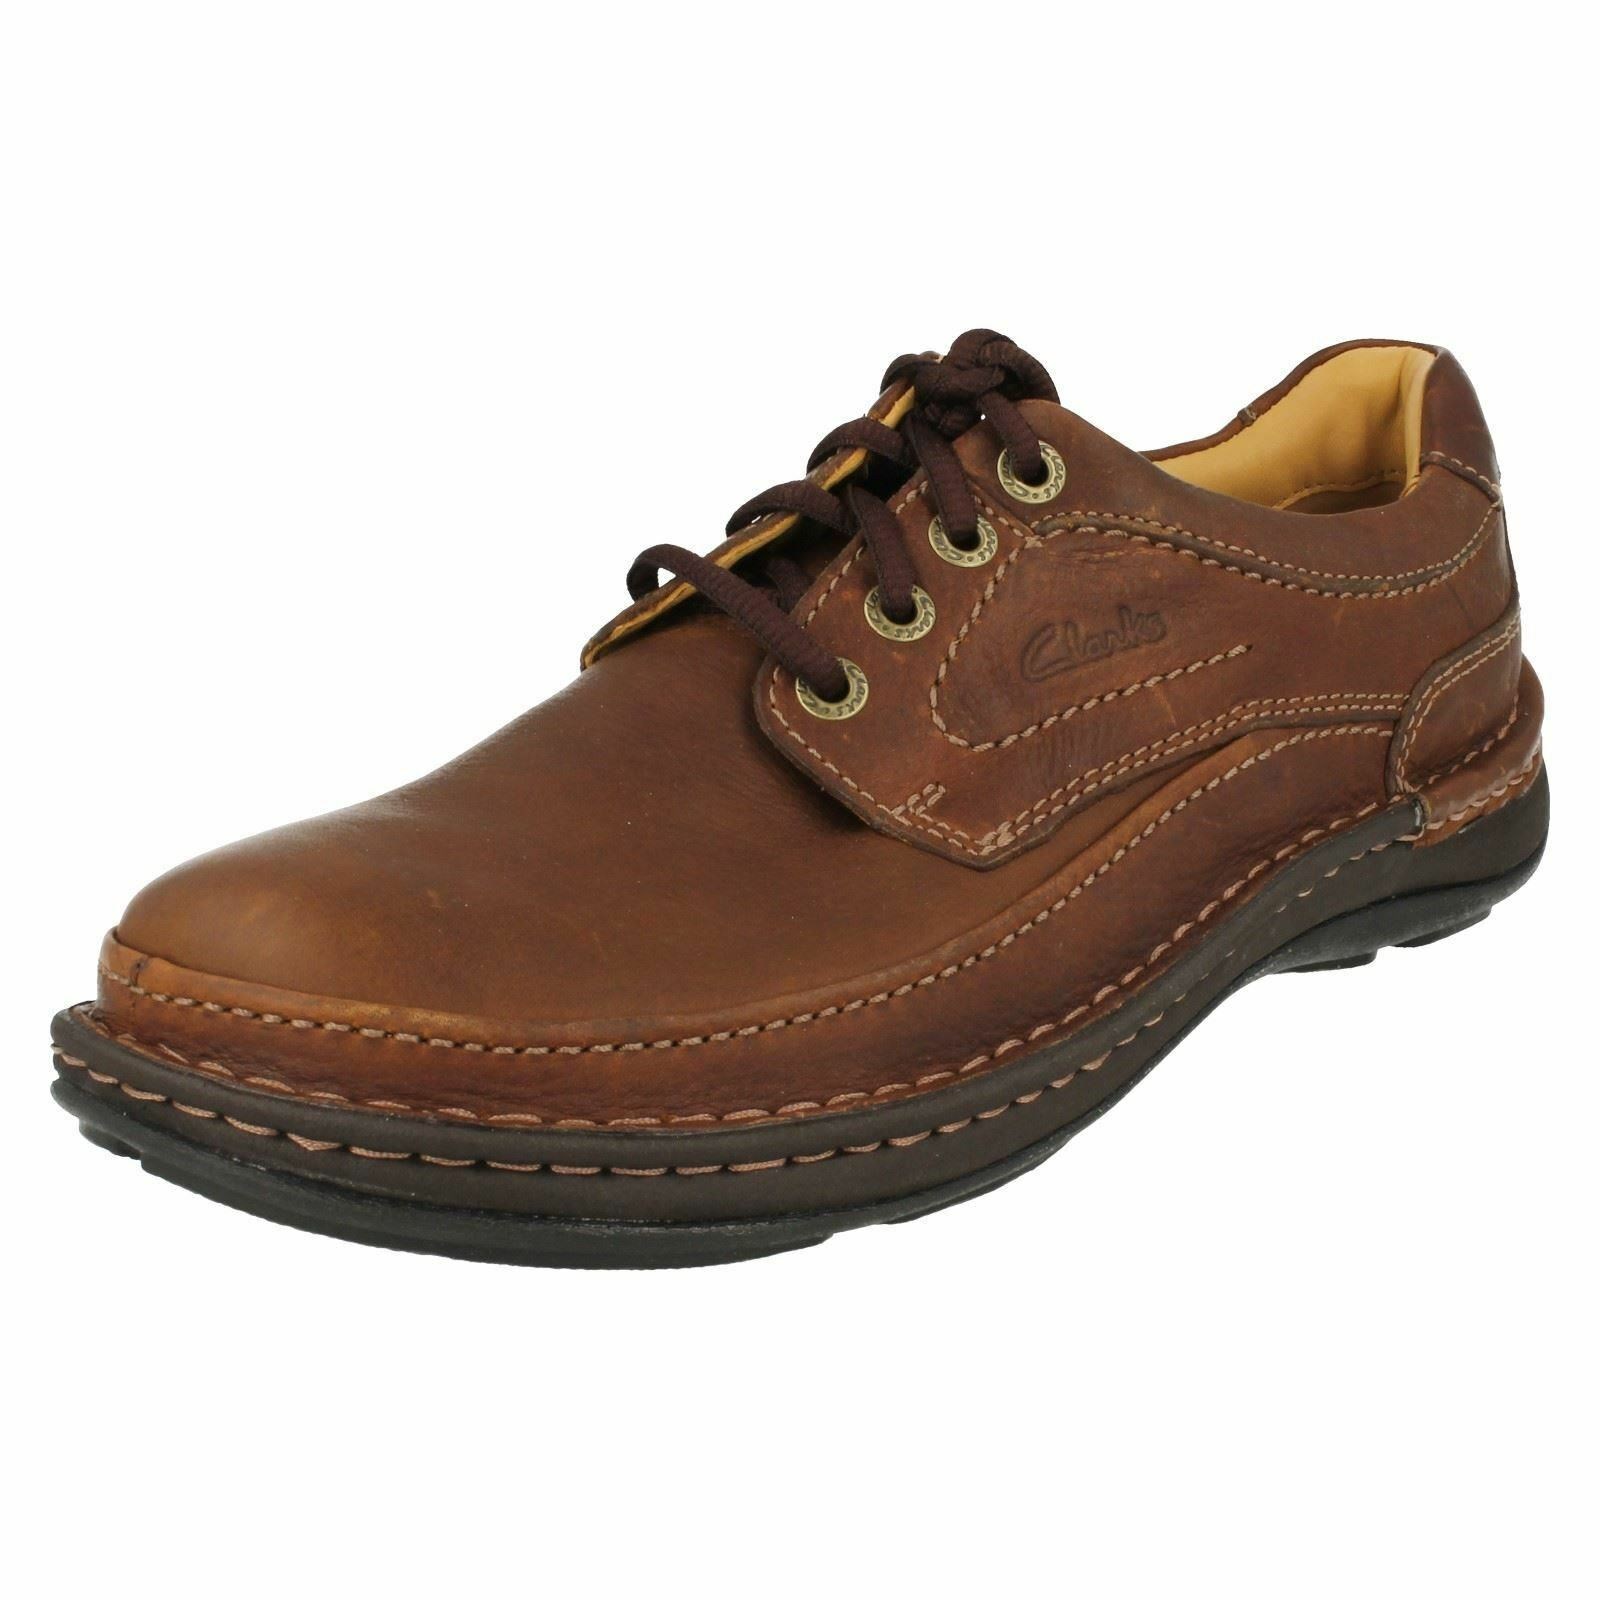 Da Uomo Clarks Nature Lacci Three Mogano Marrone Pelle Lacci Nature Casual Scarpe G RACCORDO 4cd548